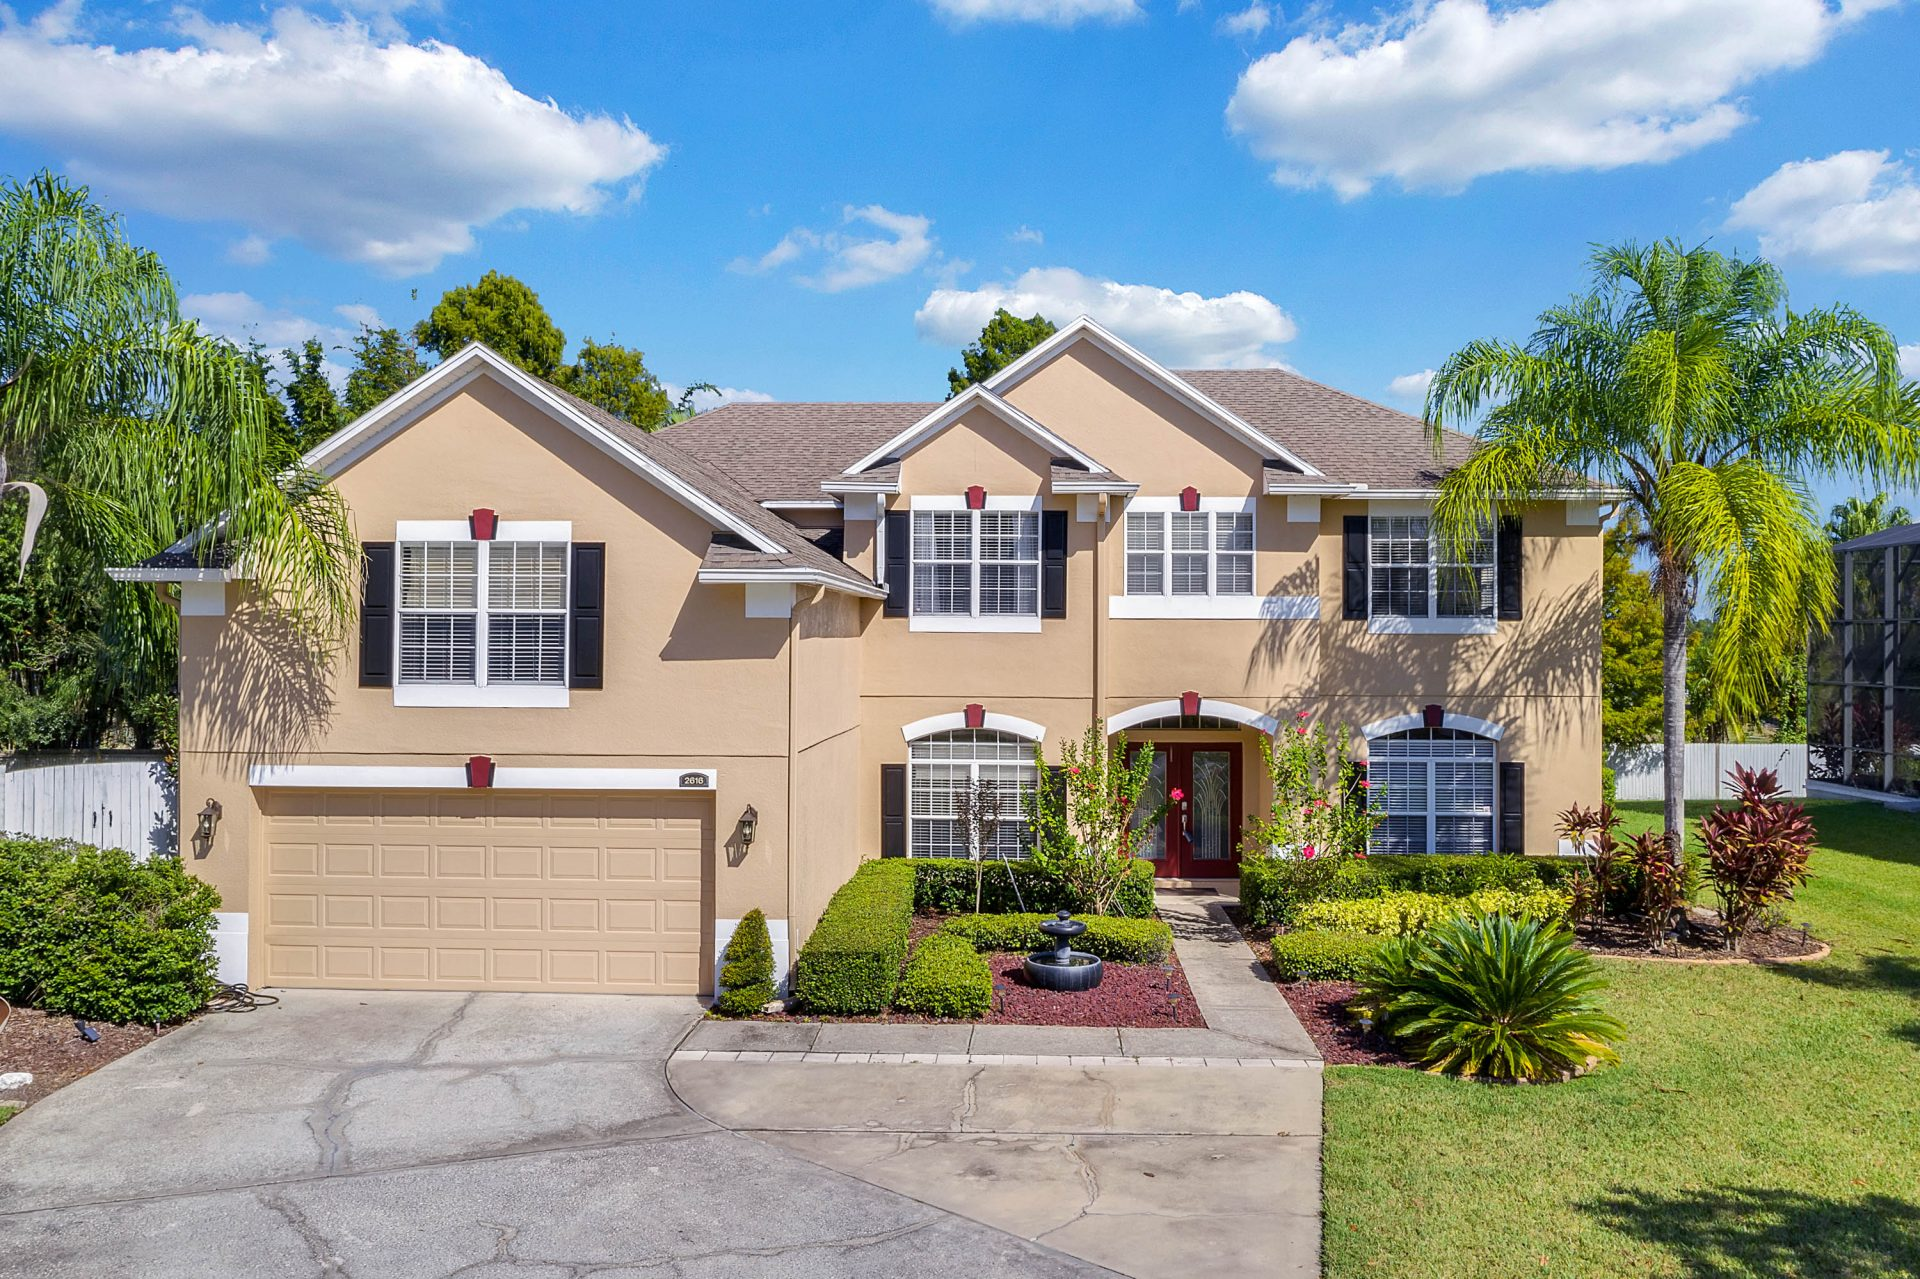 2616 Grove View Dr, winter garden, florida